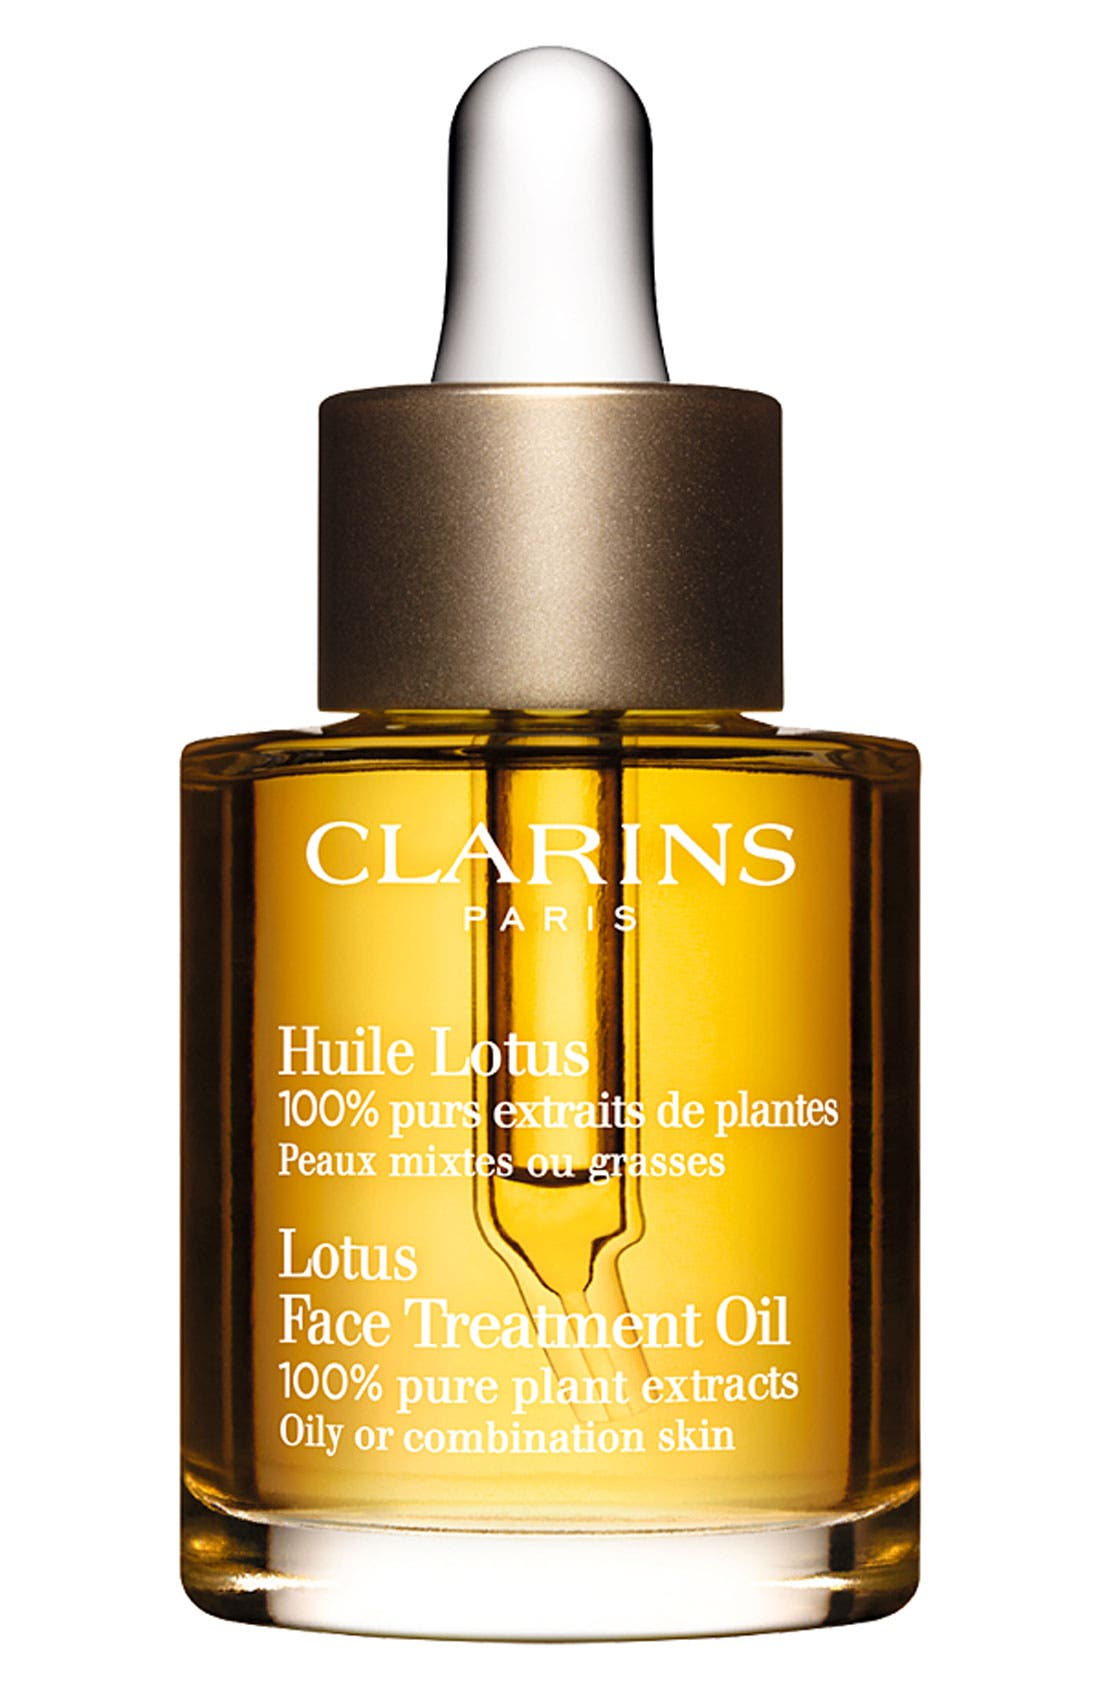 Clarins 'Lotus' Face Treatment Oil